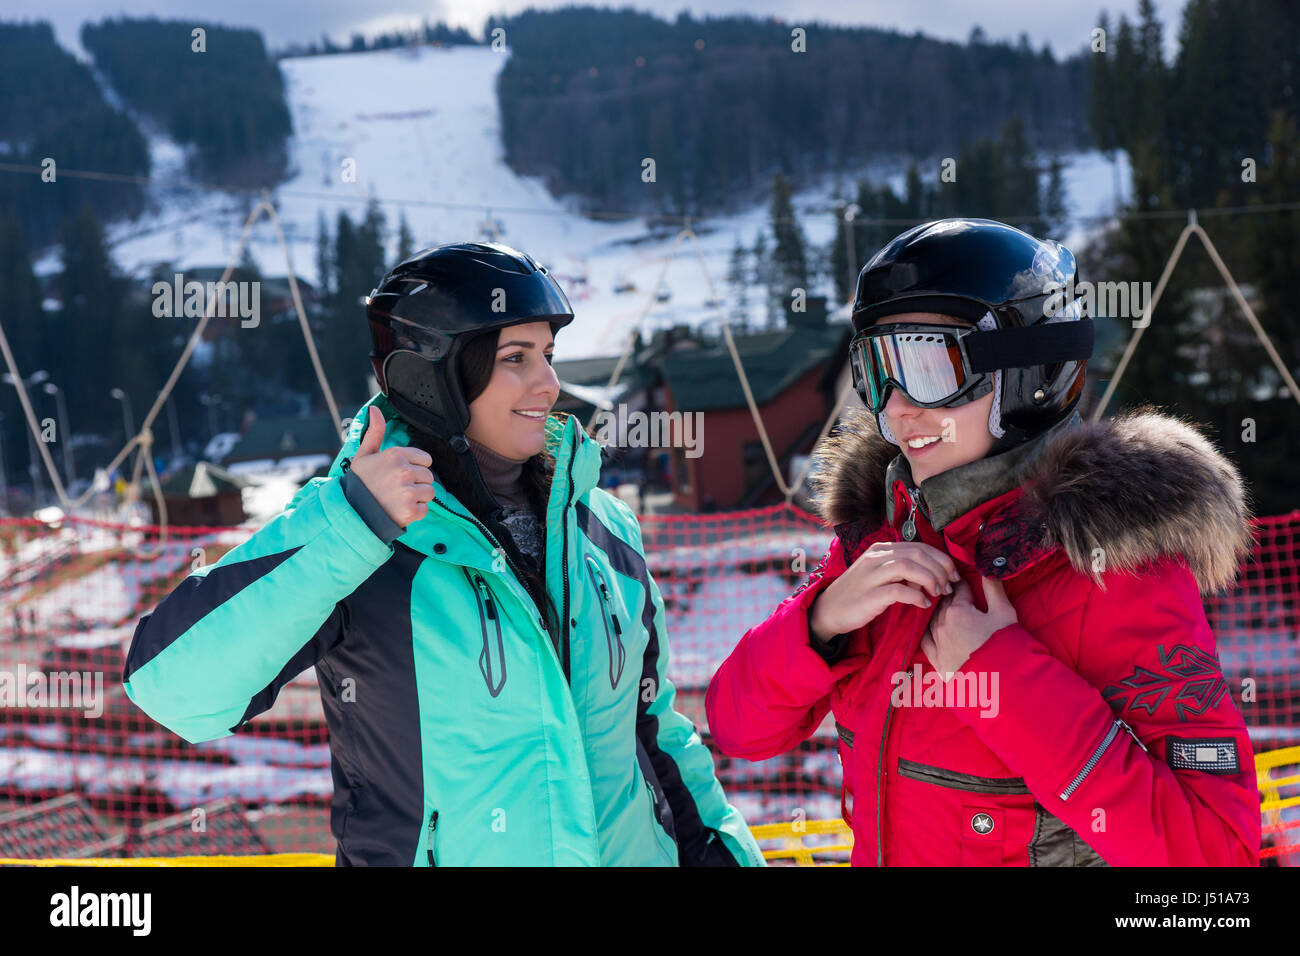 Young women in ski suits, with helmets and ski goggles standing in a ski-resort in winter period - Stock Image